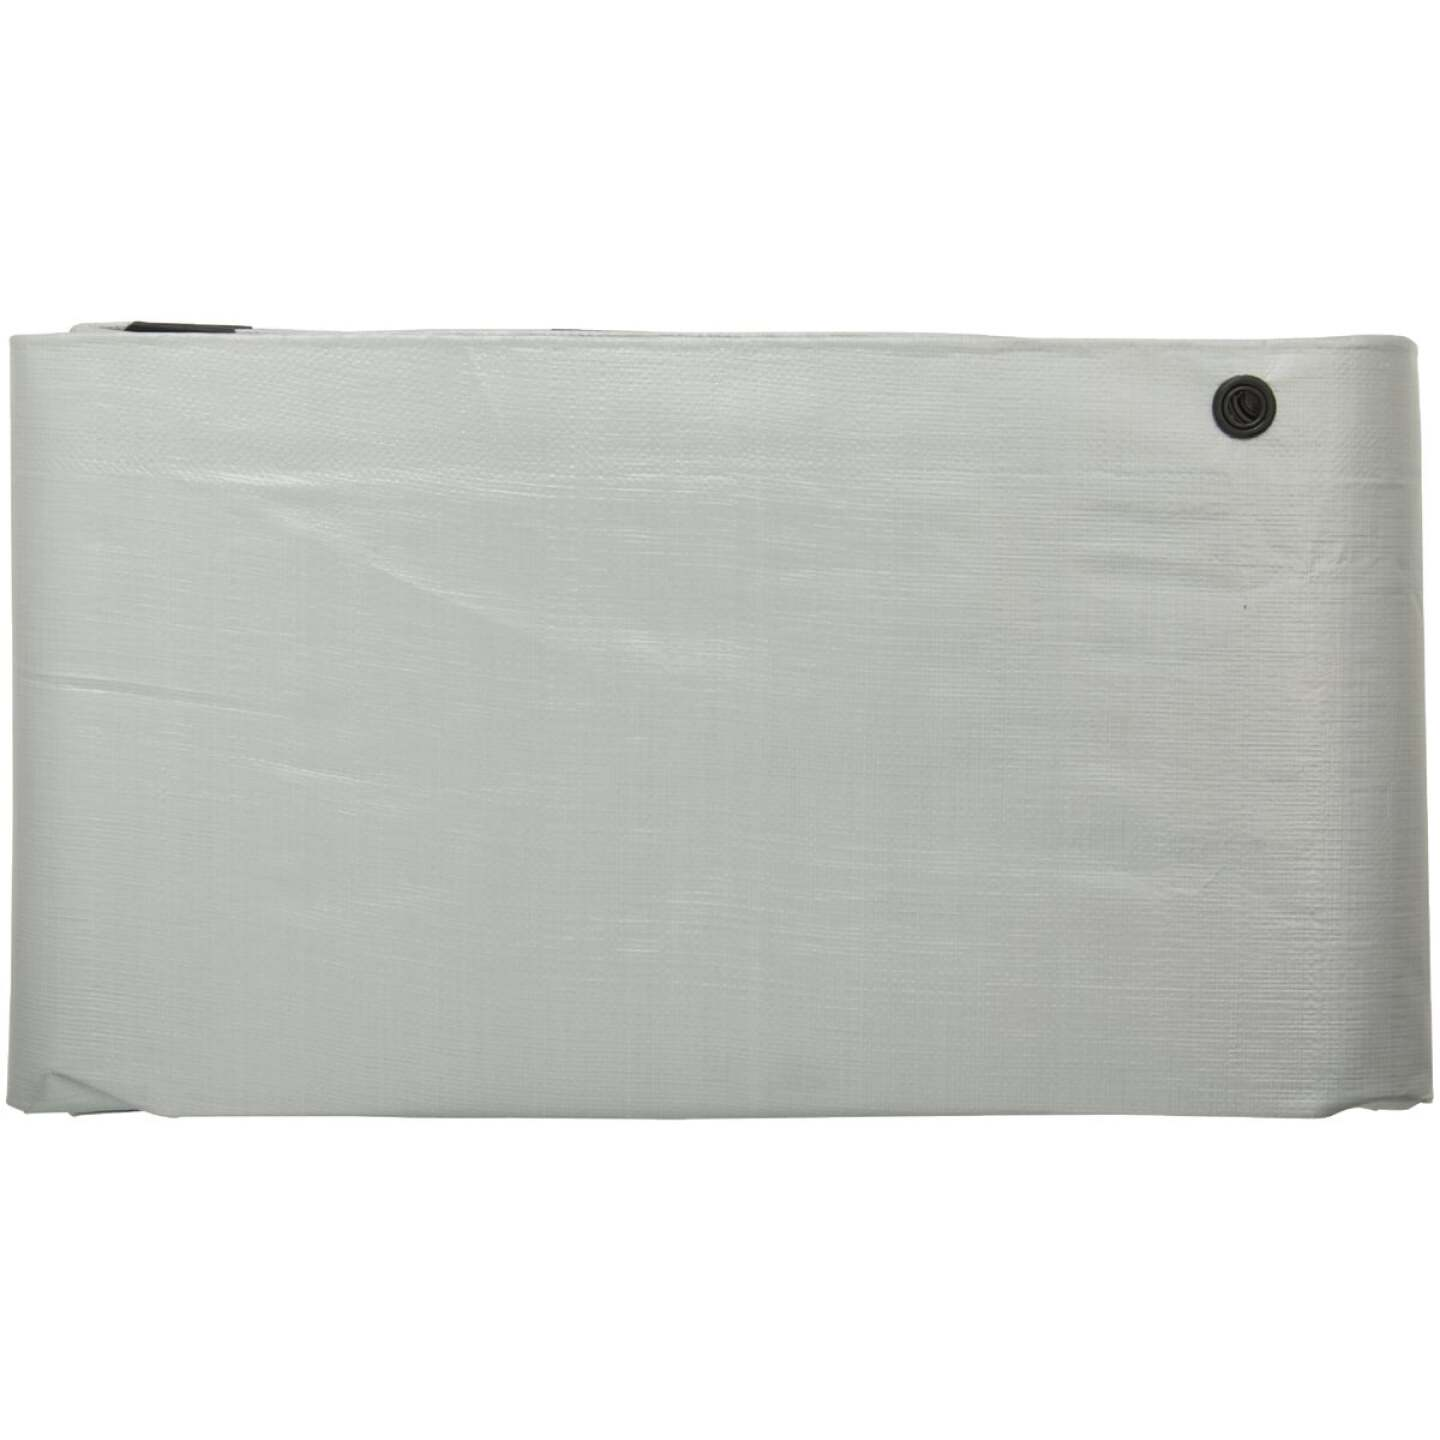 Do it Best Silver Woven 12 Ft. x 20 Ft. Heavy Duty Poly Tarp Image 2